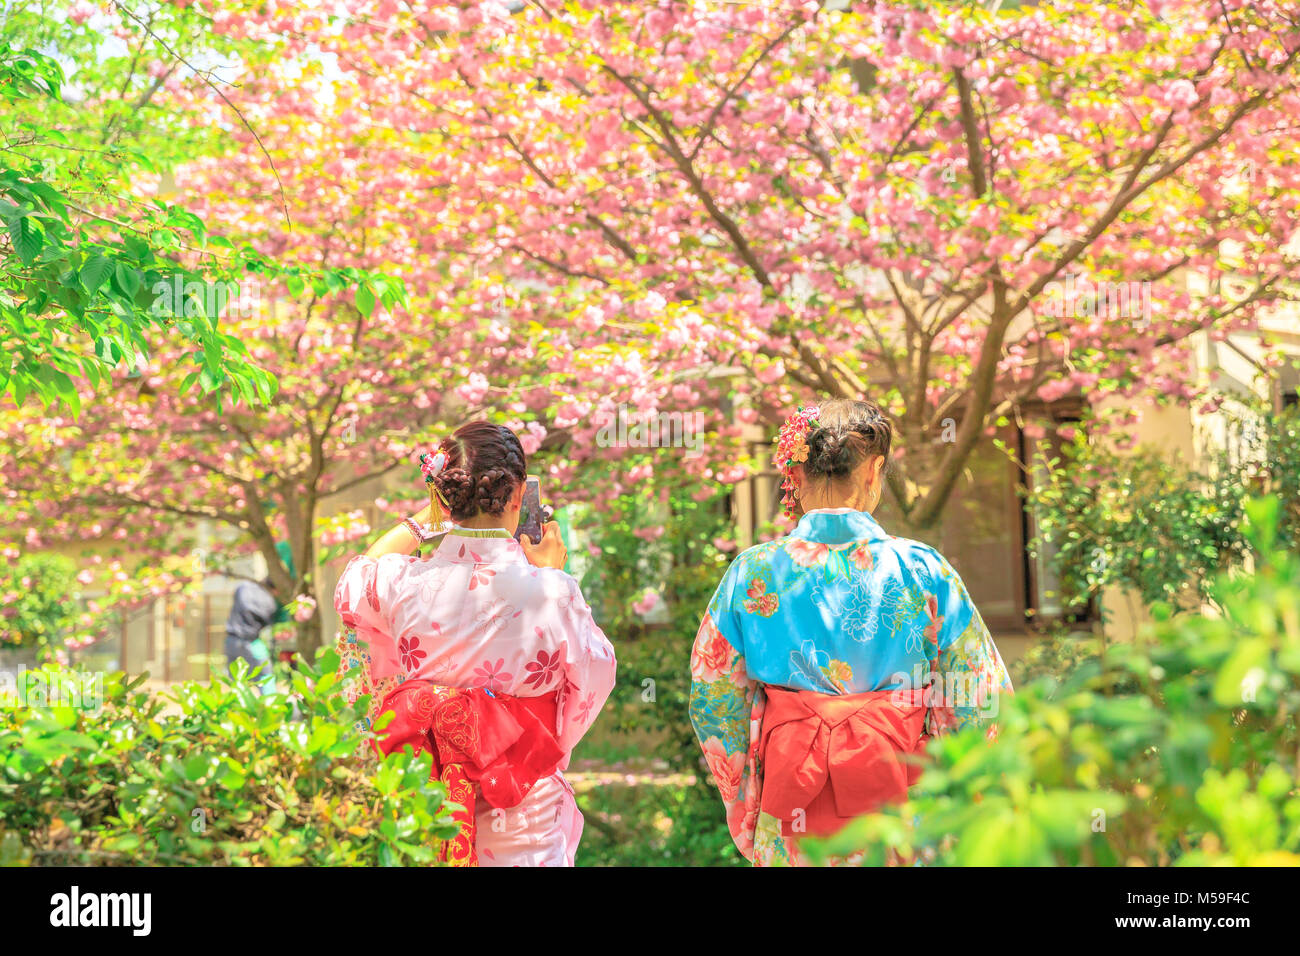 Asian women in traditional kimono take photo of cherry blossom trees along Philosopher's walk during Sakura, - Stock Image